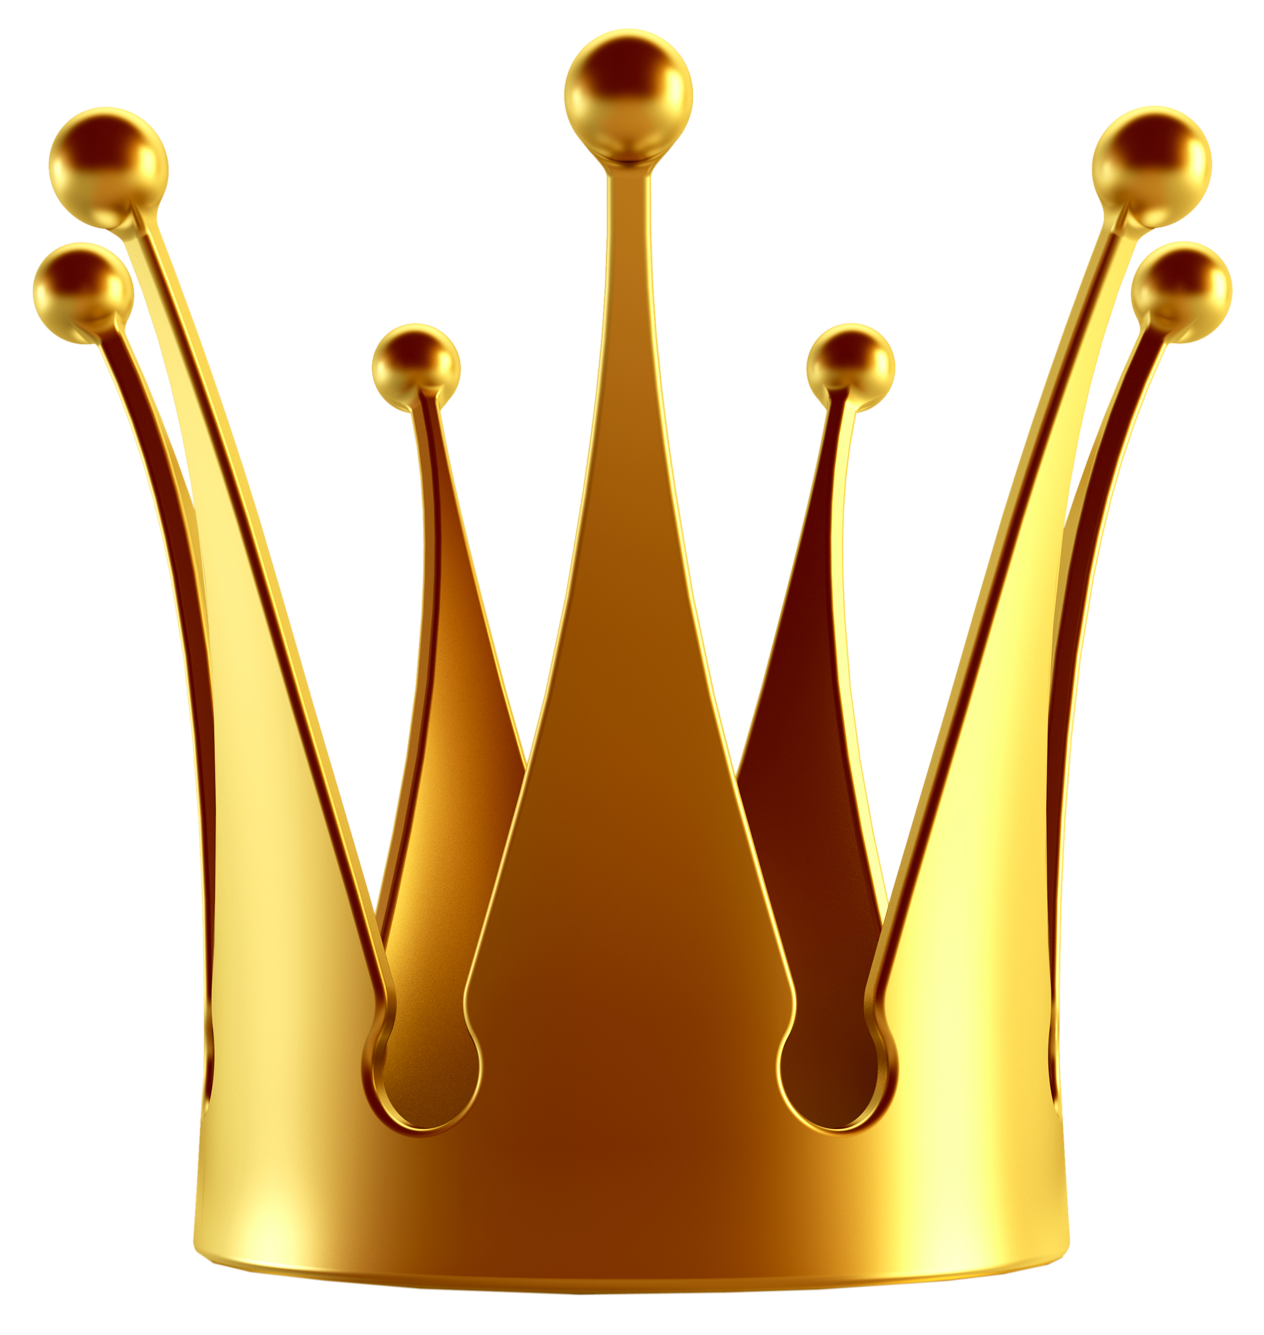 Gold crown clipart no background royalty free download King crown png clipart - ClipartFest royalty free download